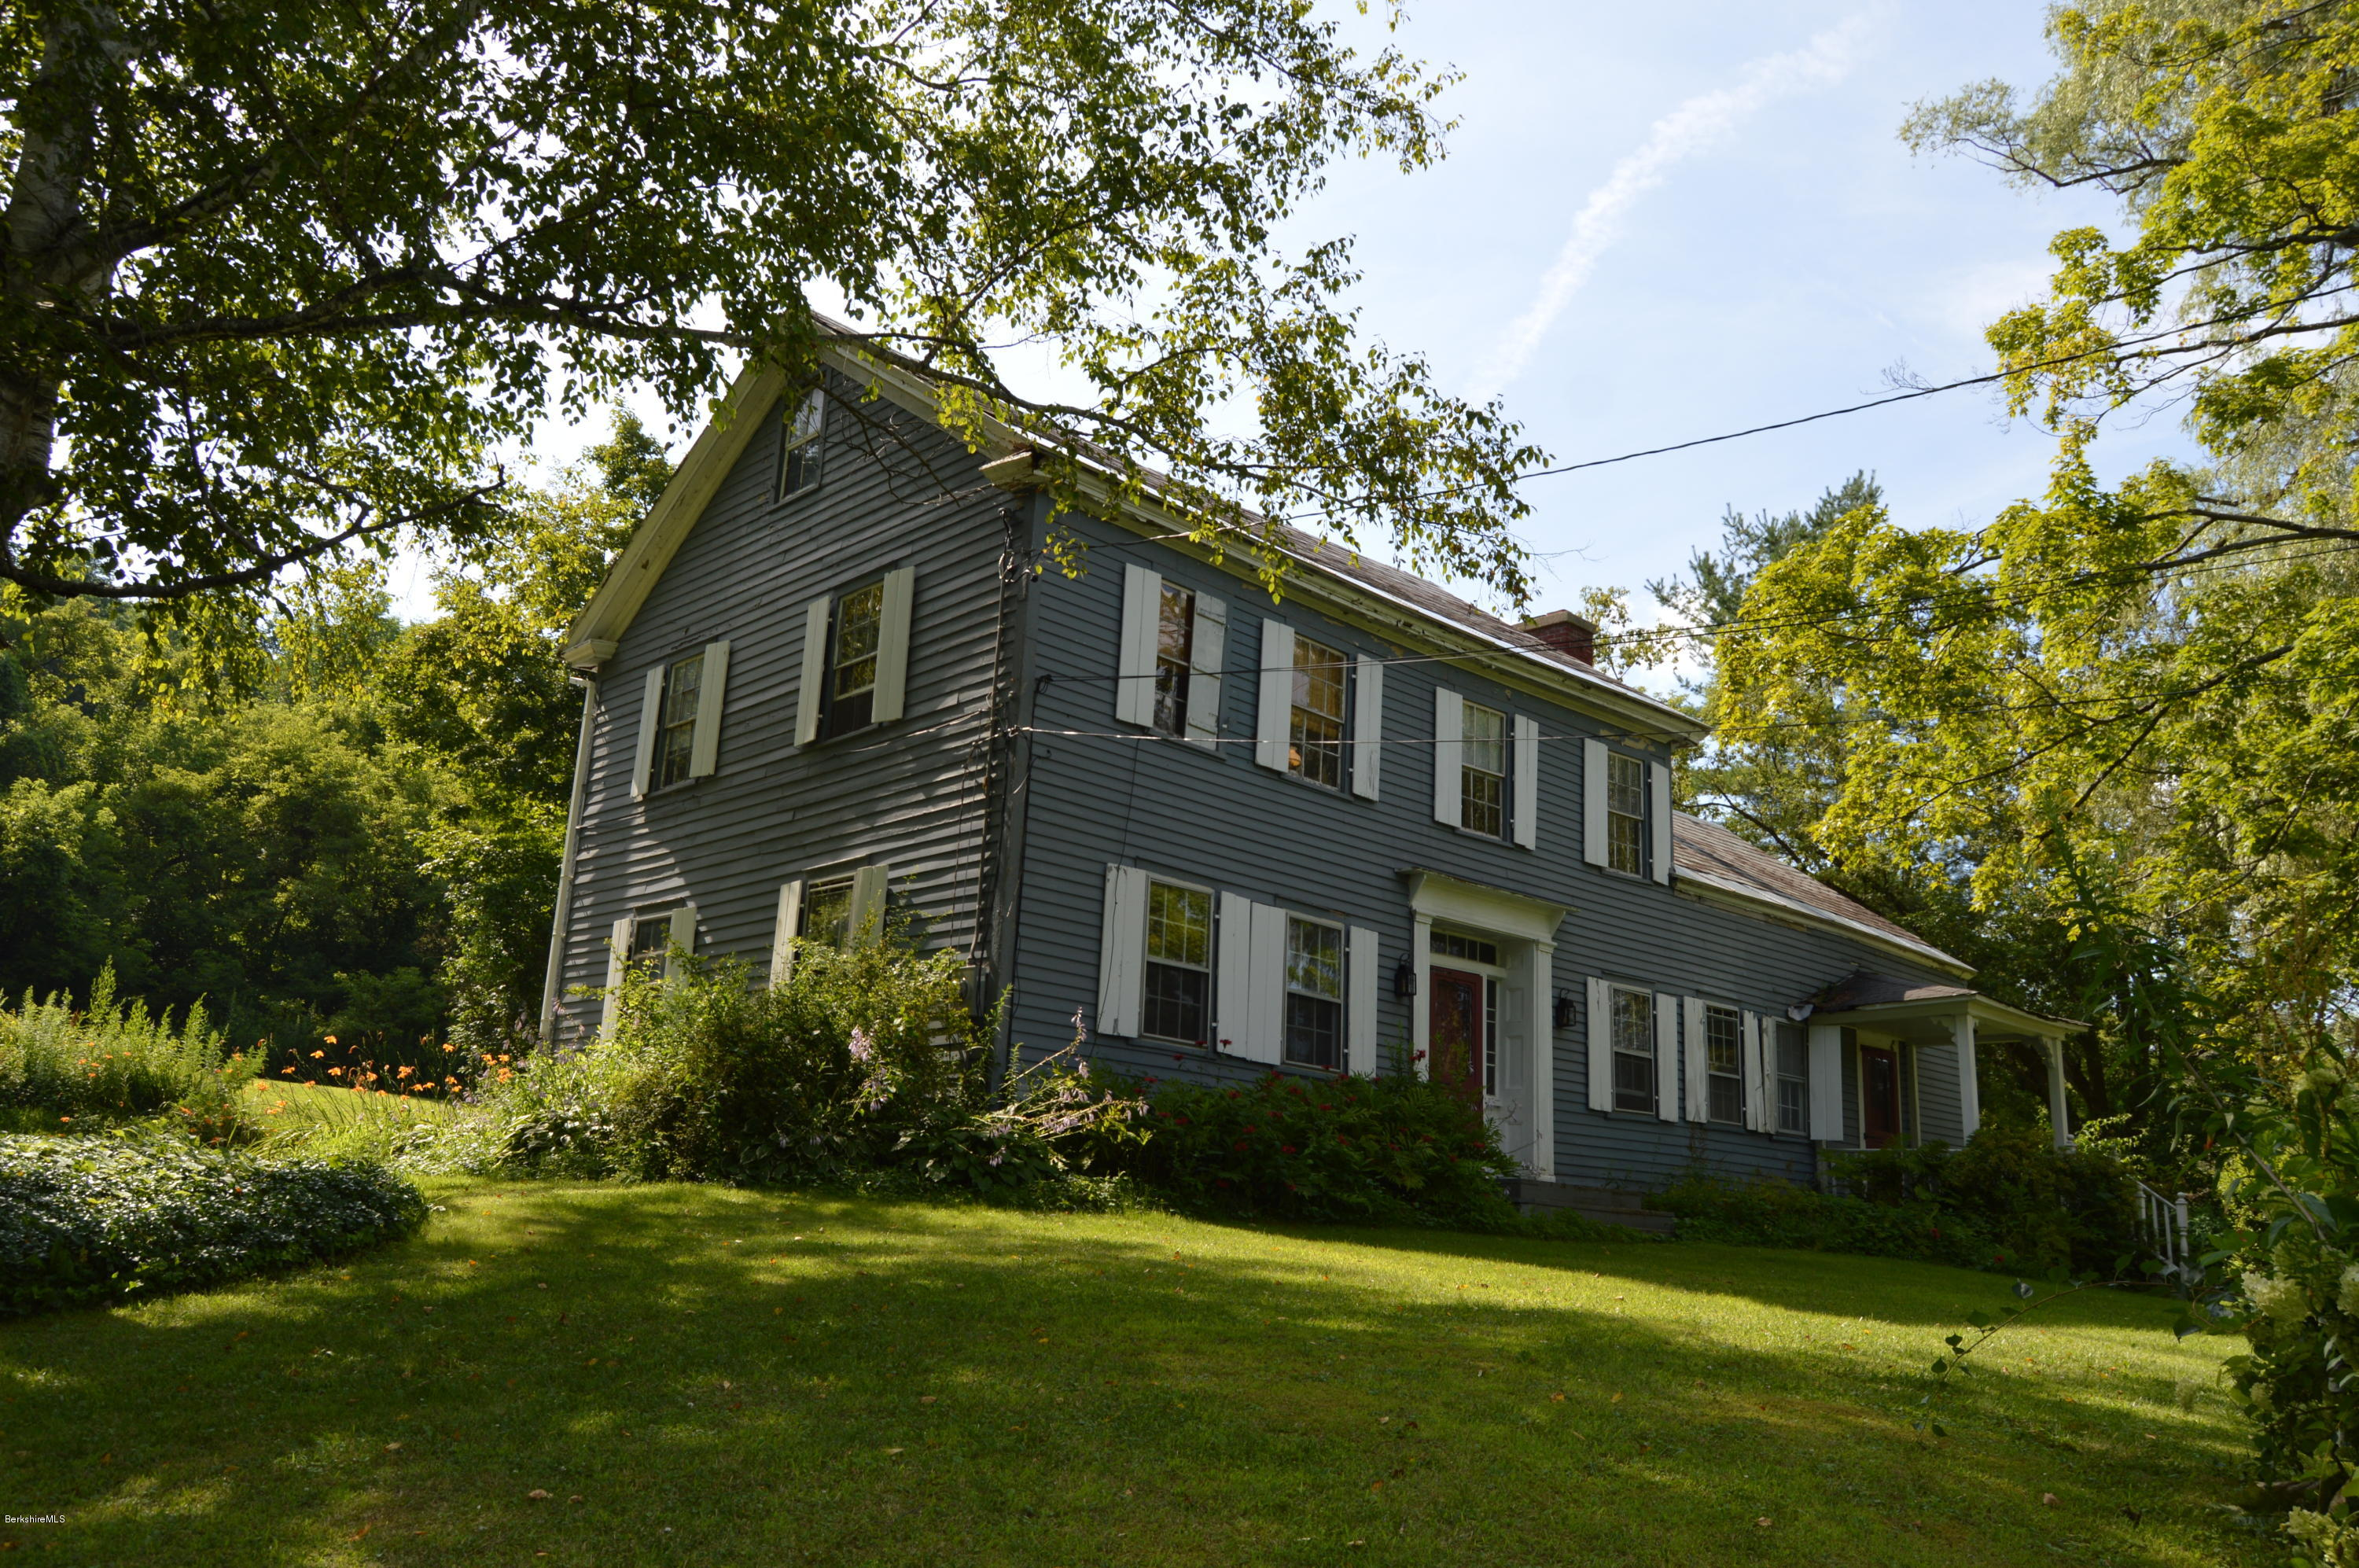 543 South State St North Adams MA 01247